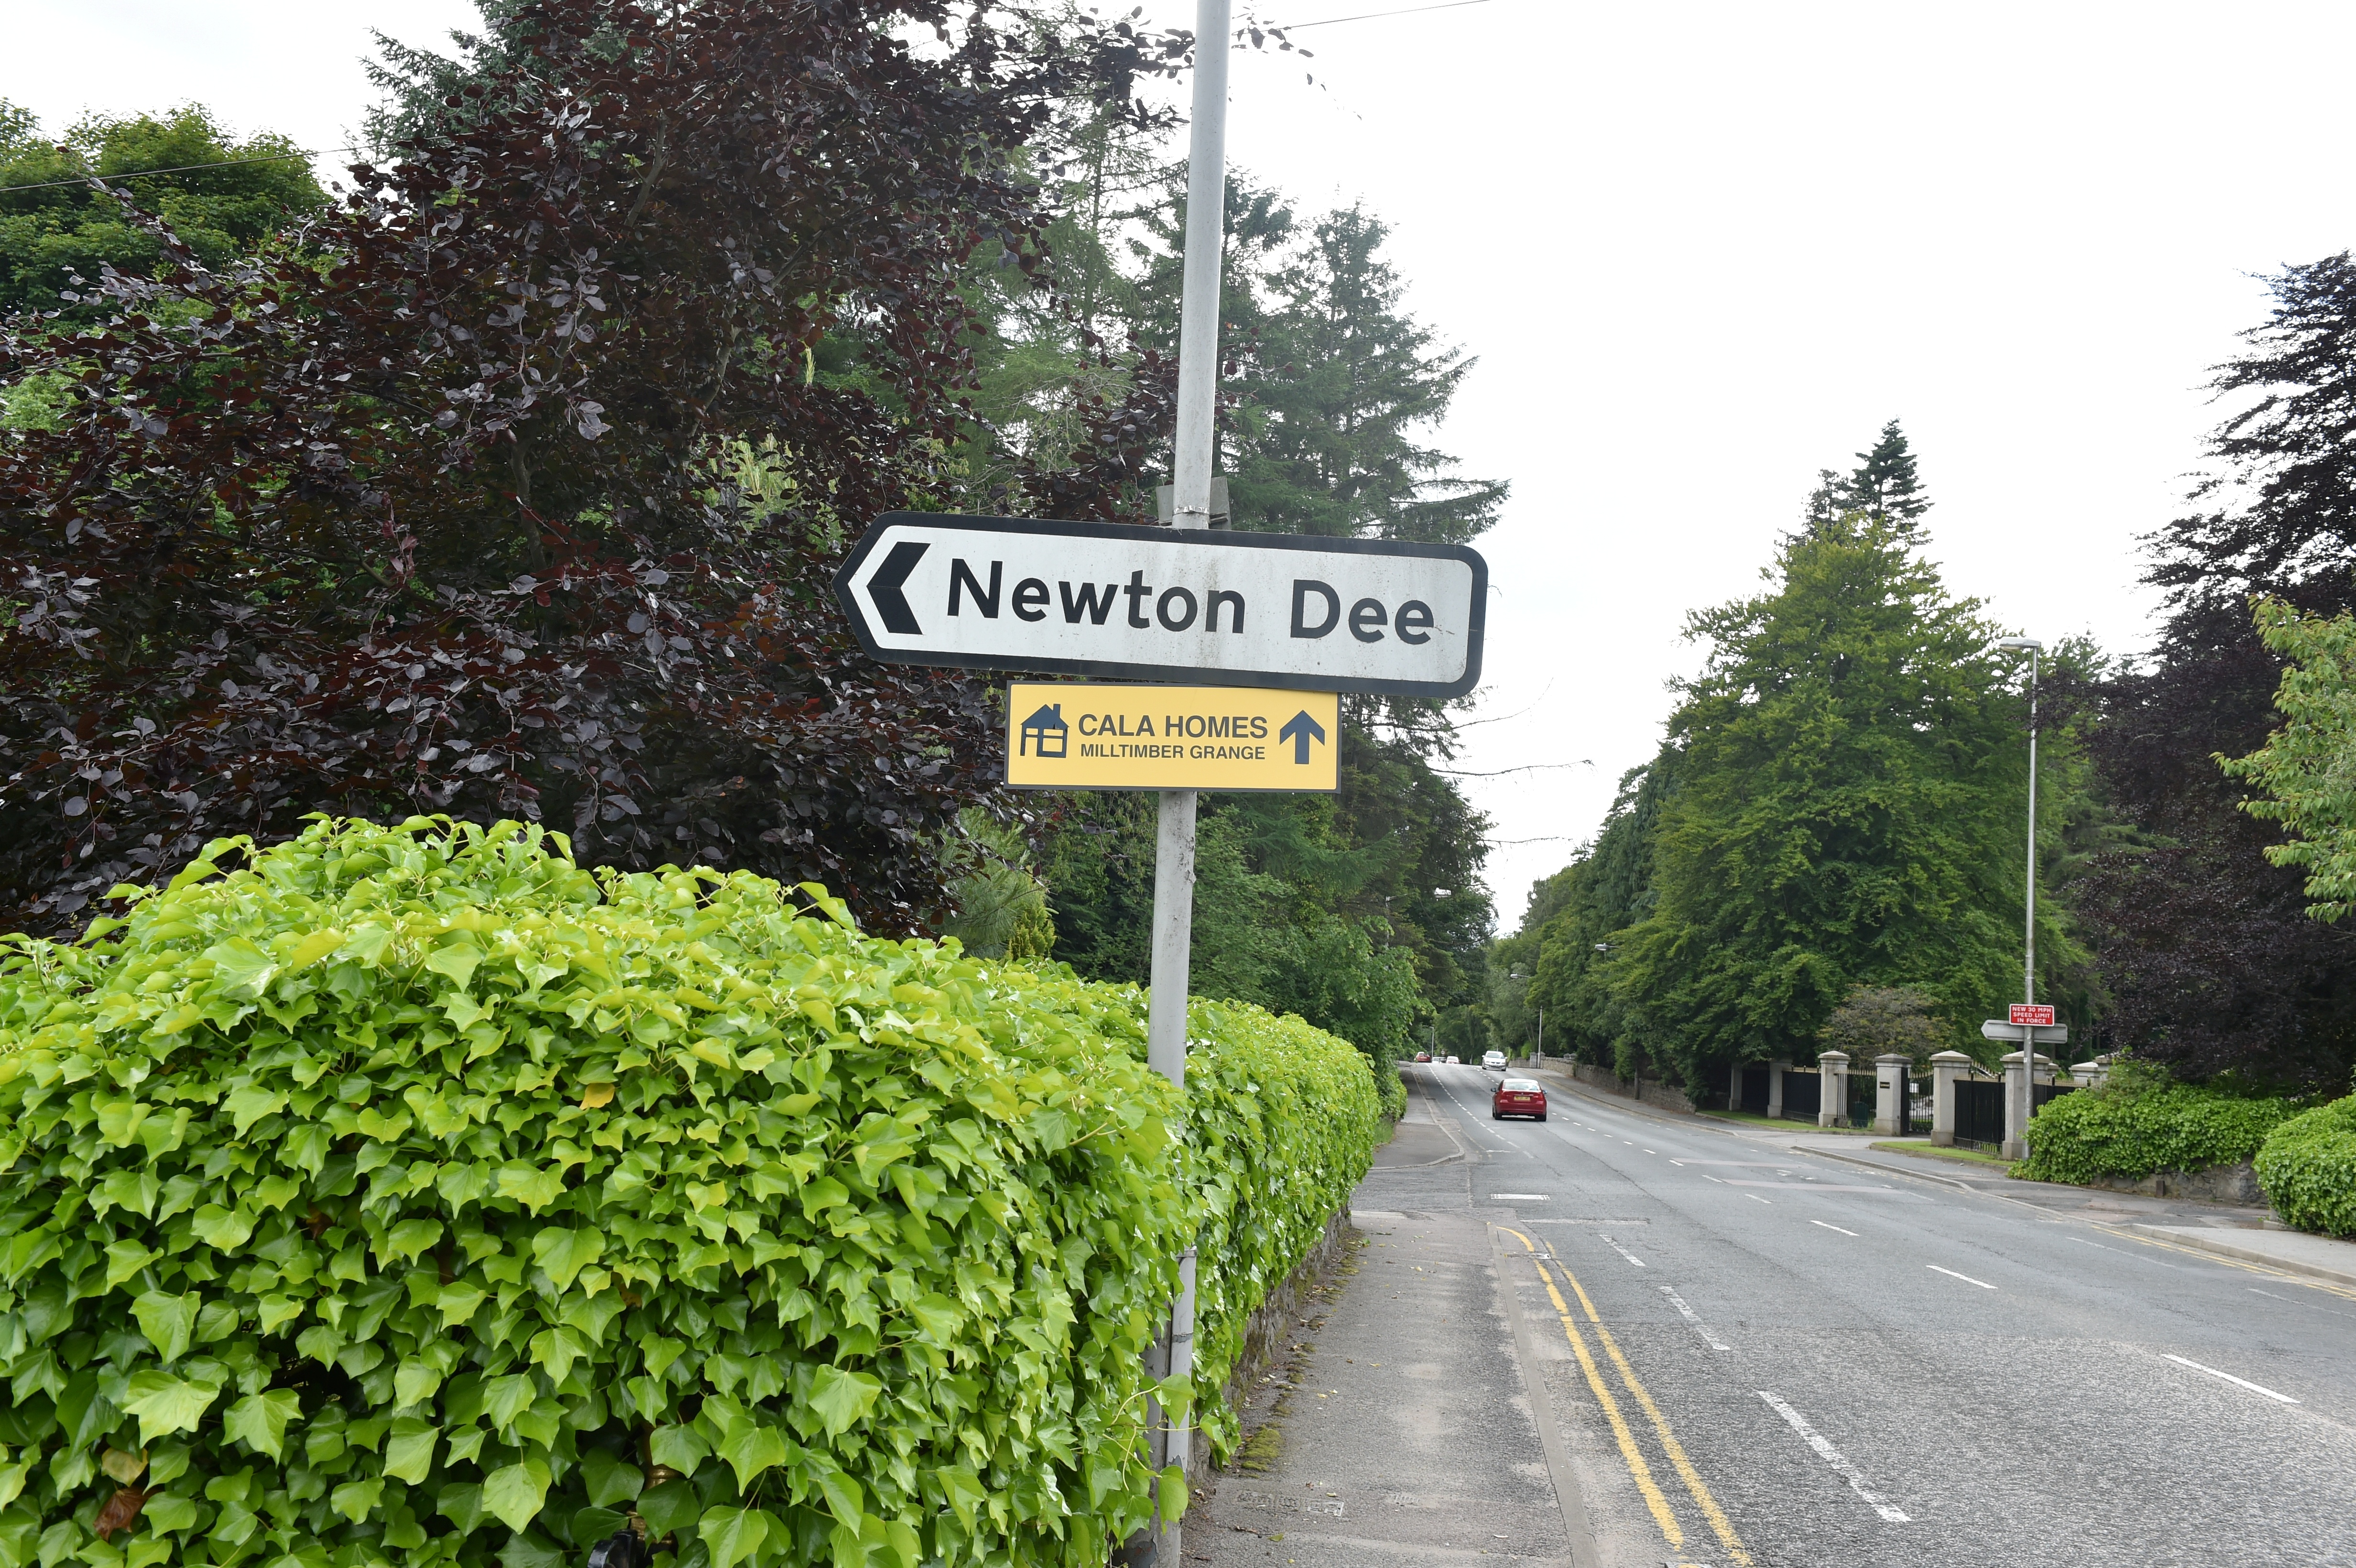 Newton Dee village in Aberdeen.